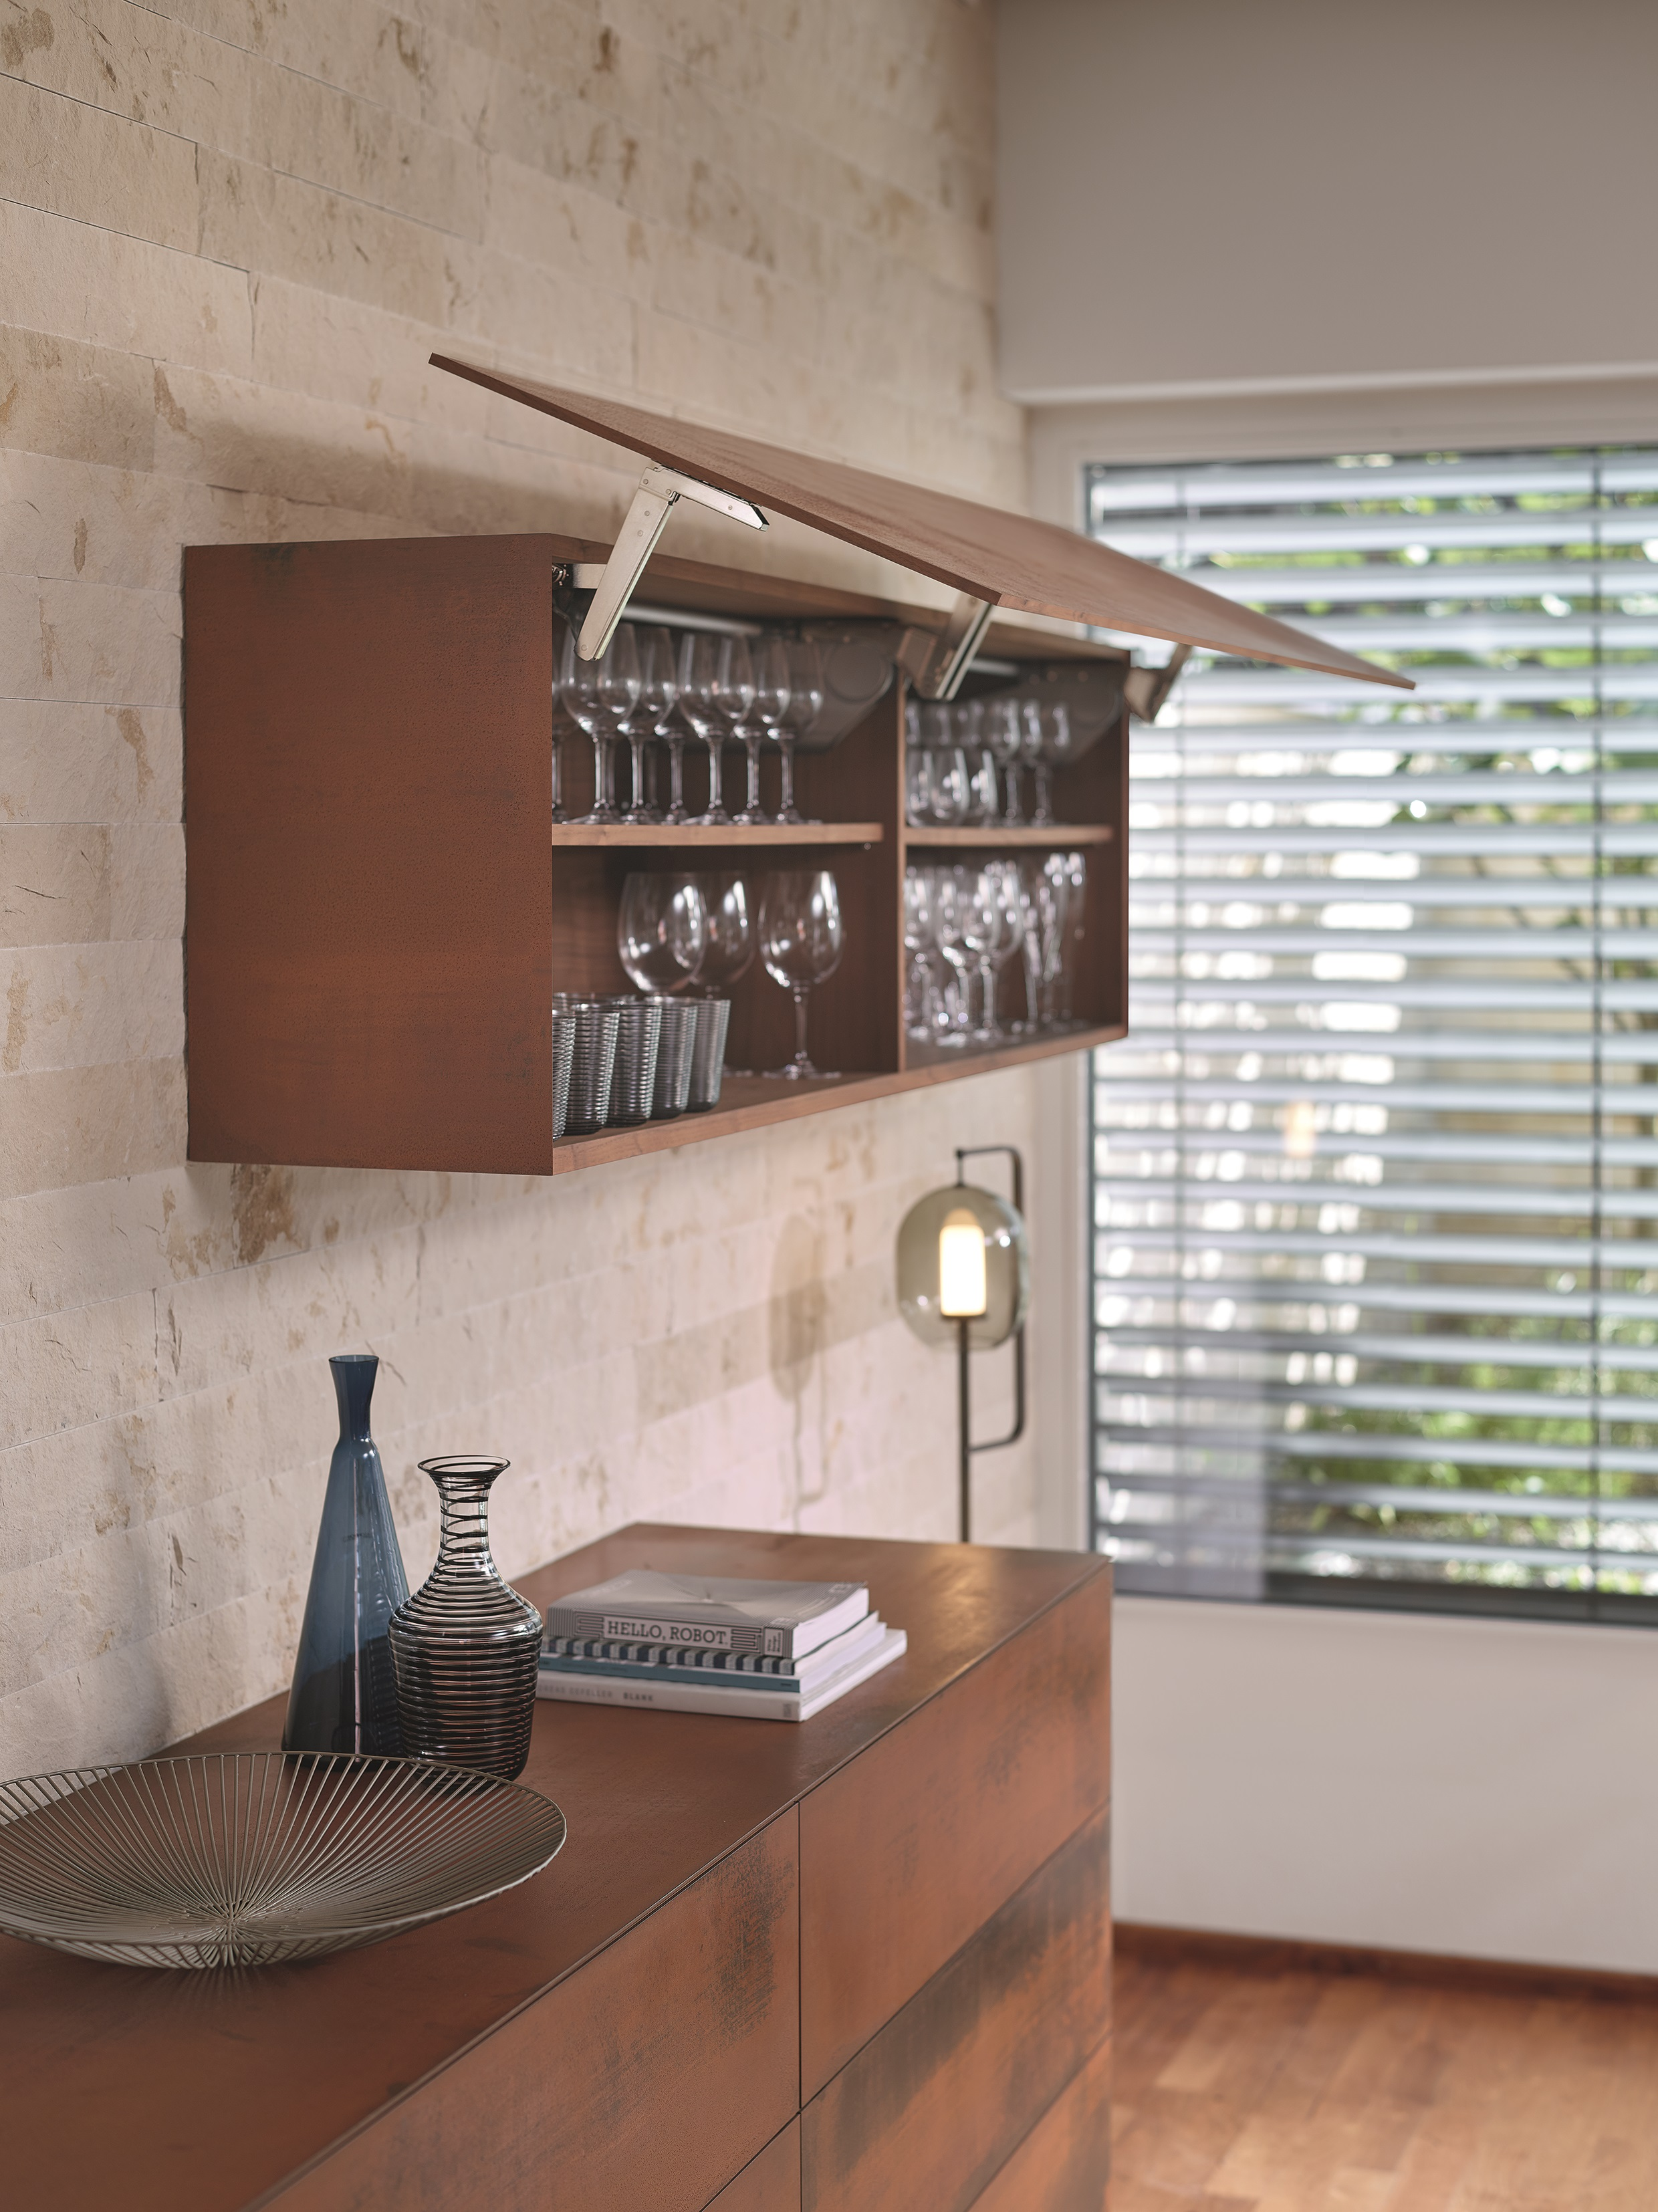 Selected Types Of Aventos Flap System Can Also Be Mounted With The  Fastening System Expando T U2013 Convenient With The Unchanged Mounting  Position. Photo: Blum